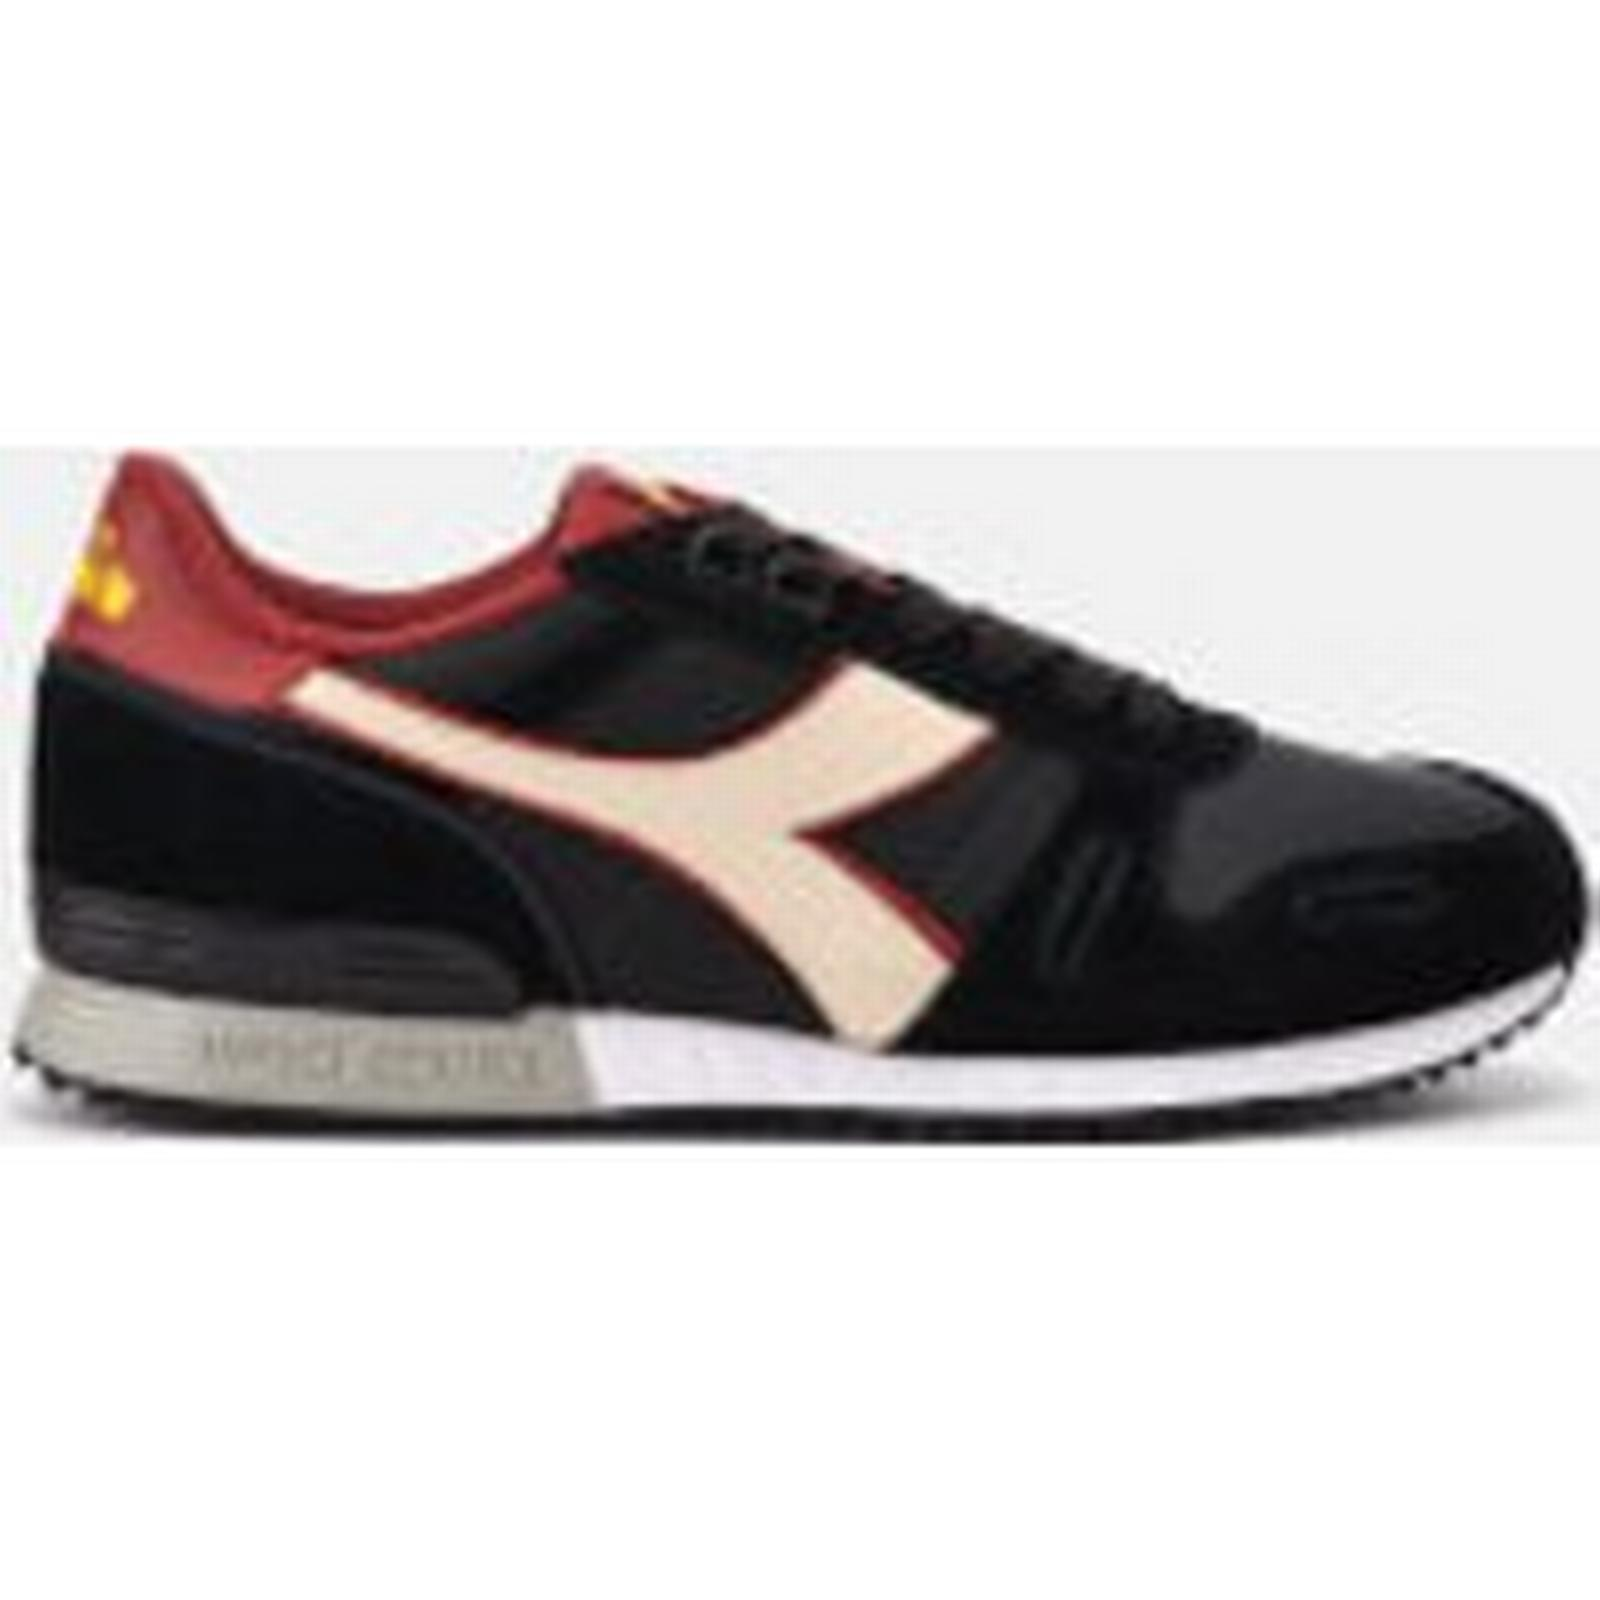 Diadora Men's Titan II Black/Pink Winter Pack Trainers - Black/Pink II Tint 4e67b7